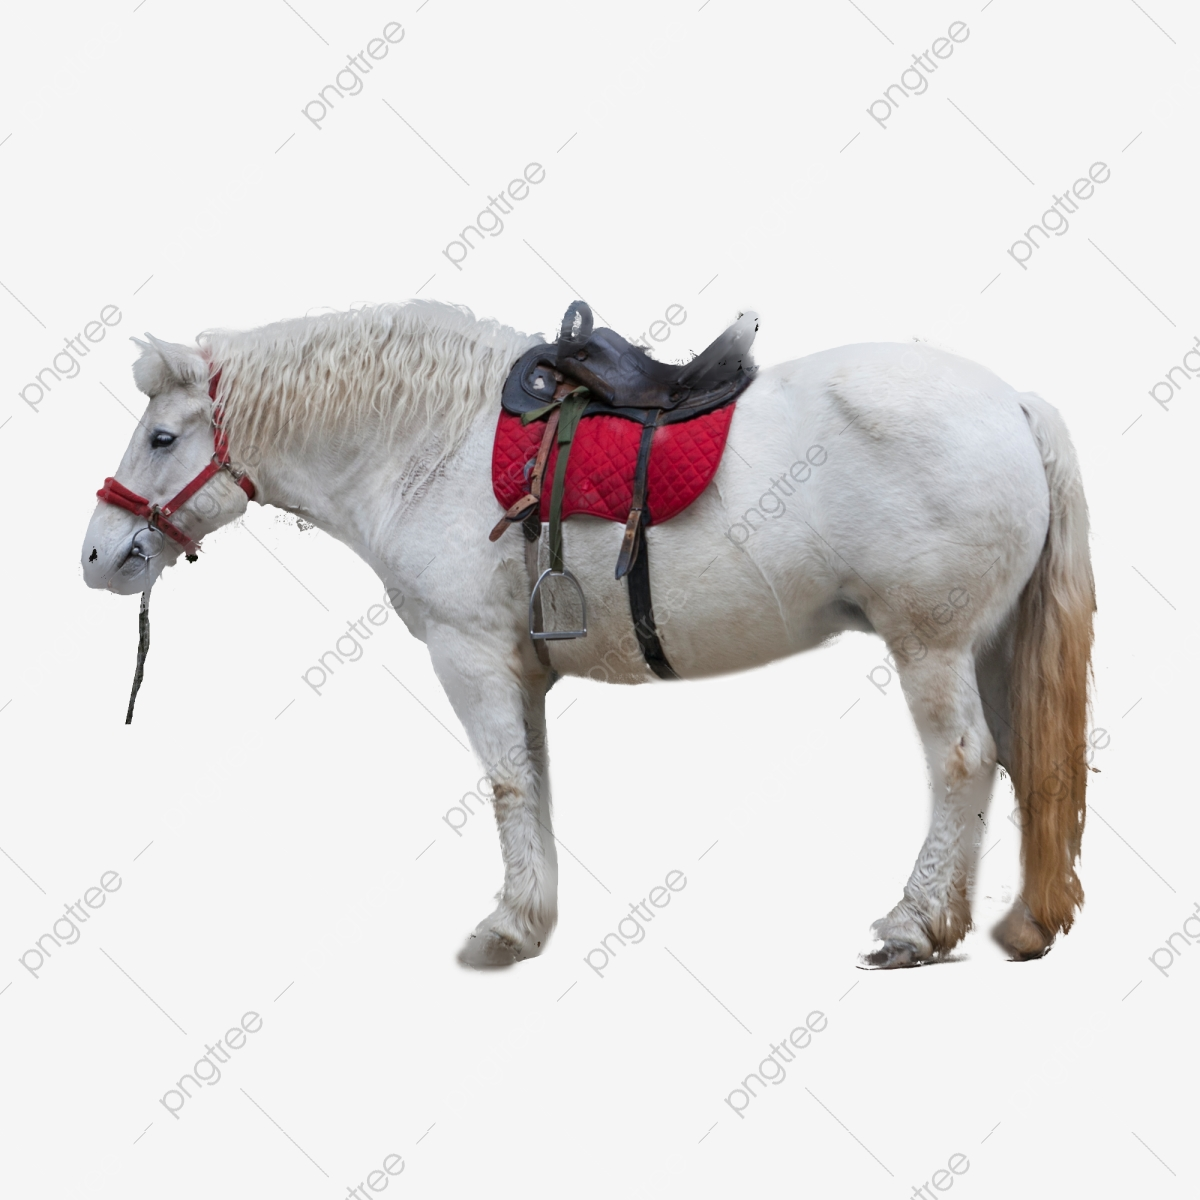 A Docile Beautiful White Horse Horse Clipart Ili Horse Animal Png Transparent Clipart Image And Psd File For Free Download